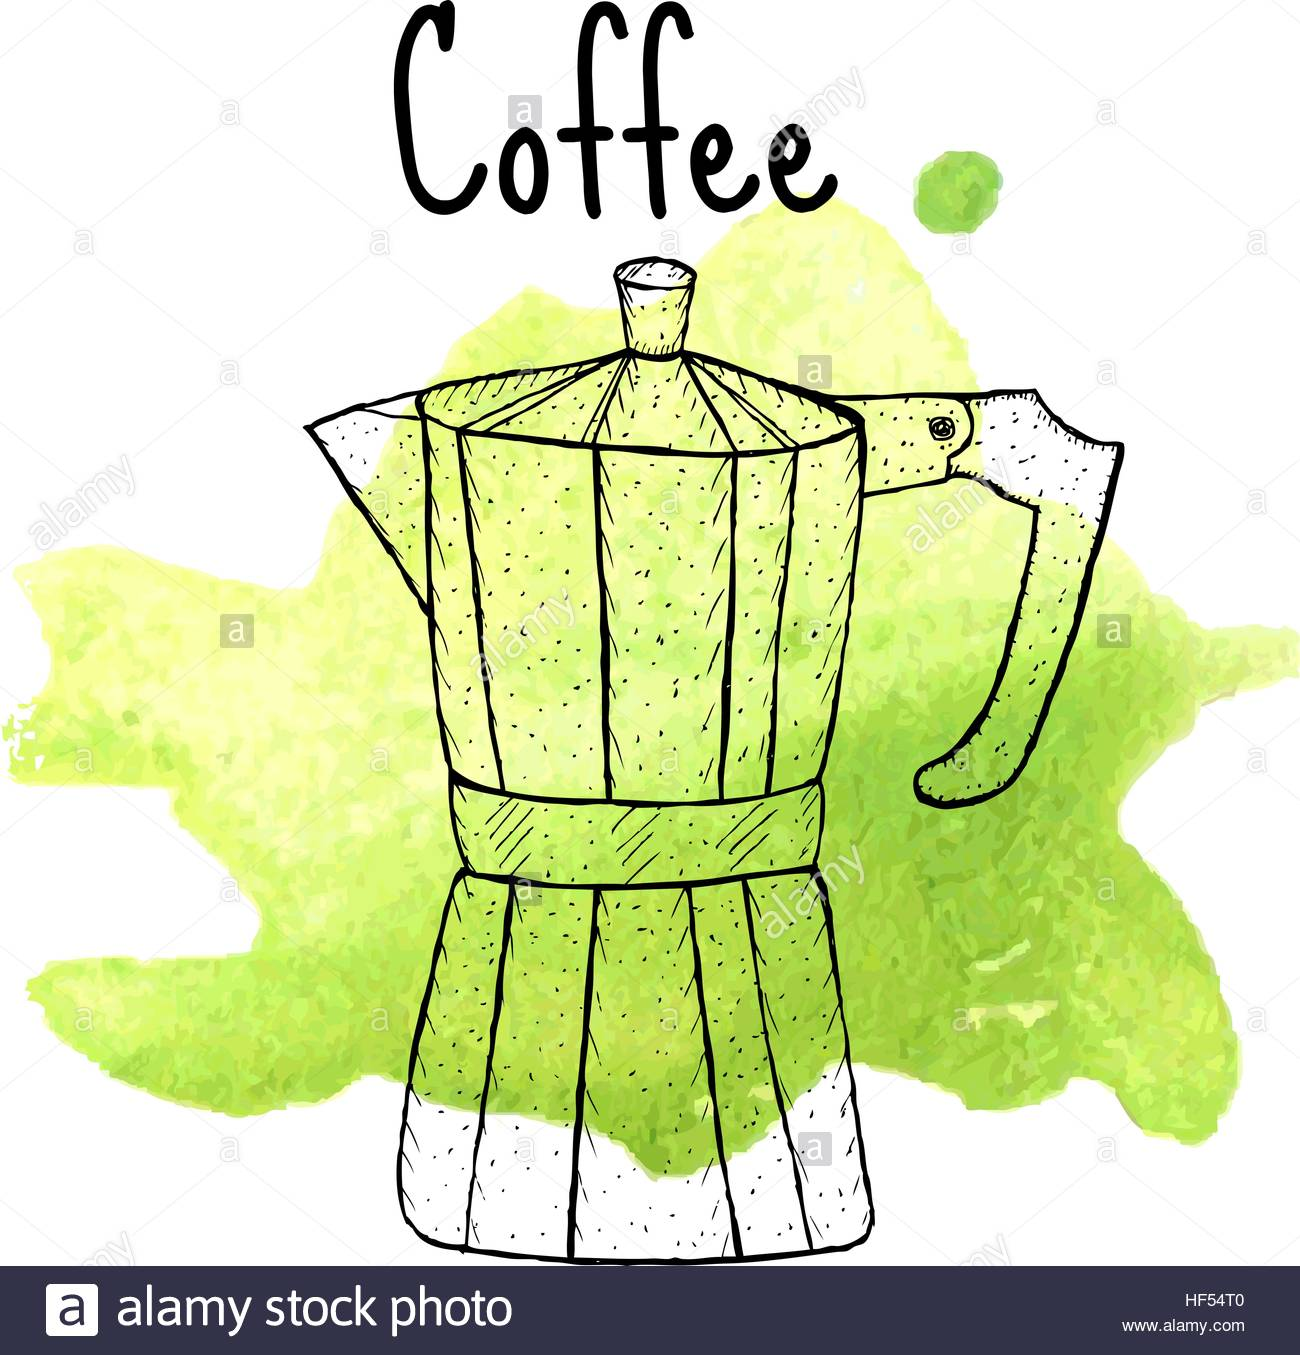 1300x1355 Geyser Coffee Sketch, Hand Drawing Style. Vector Illustration